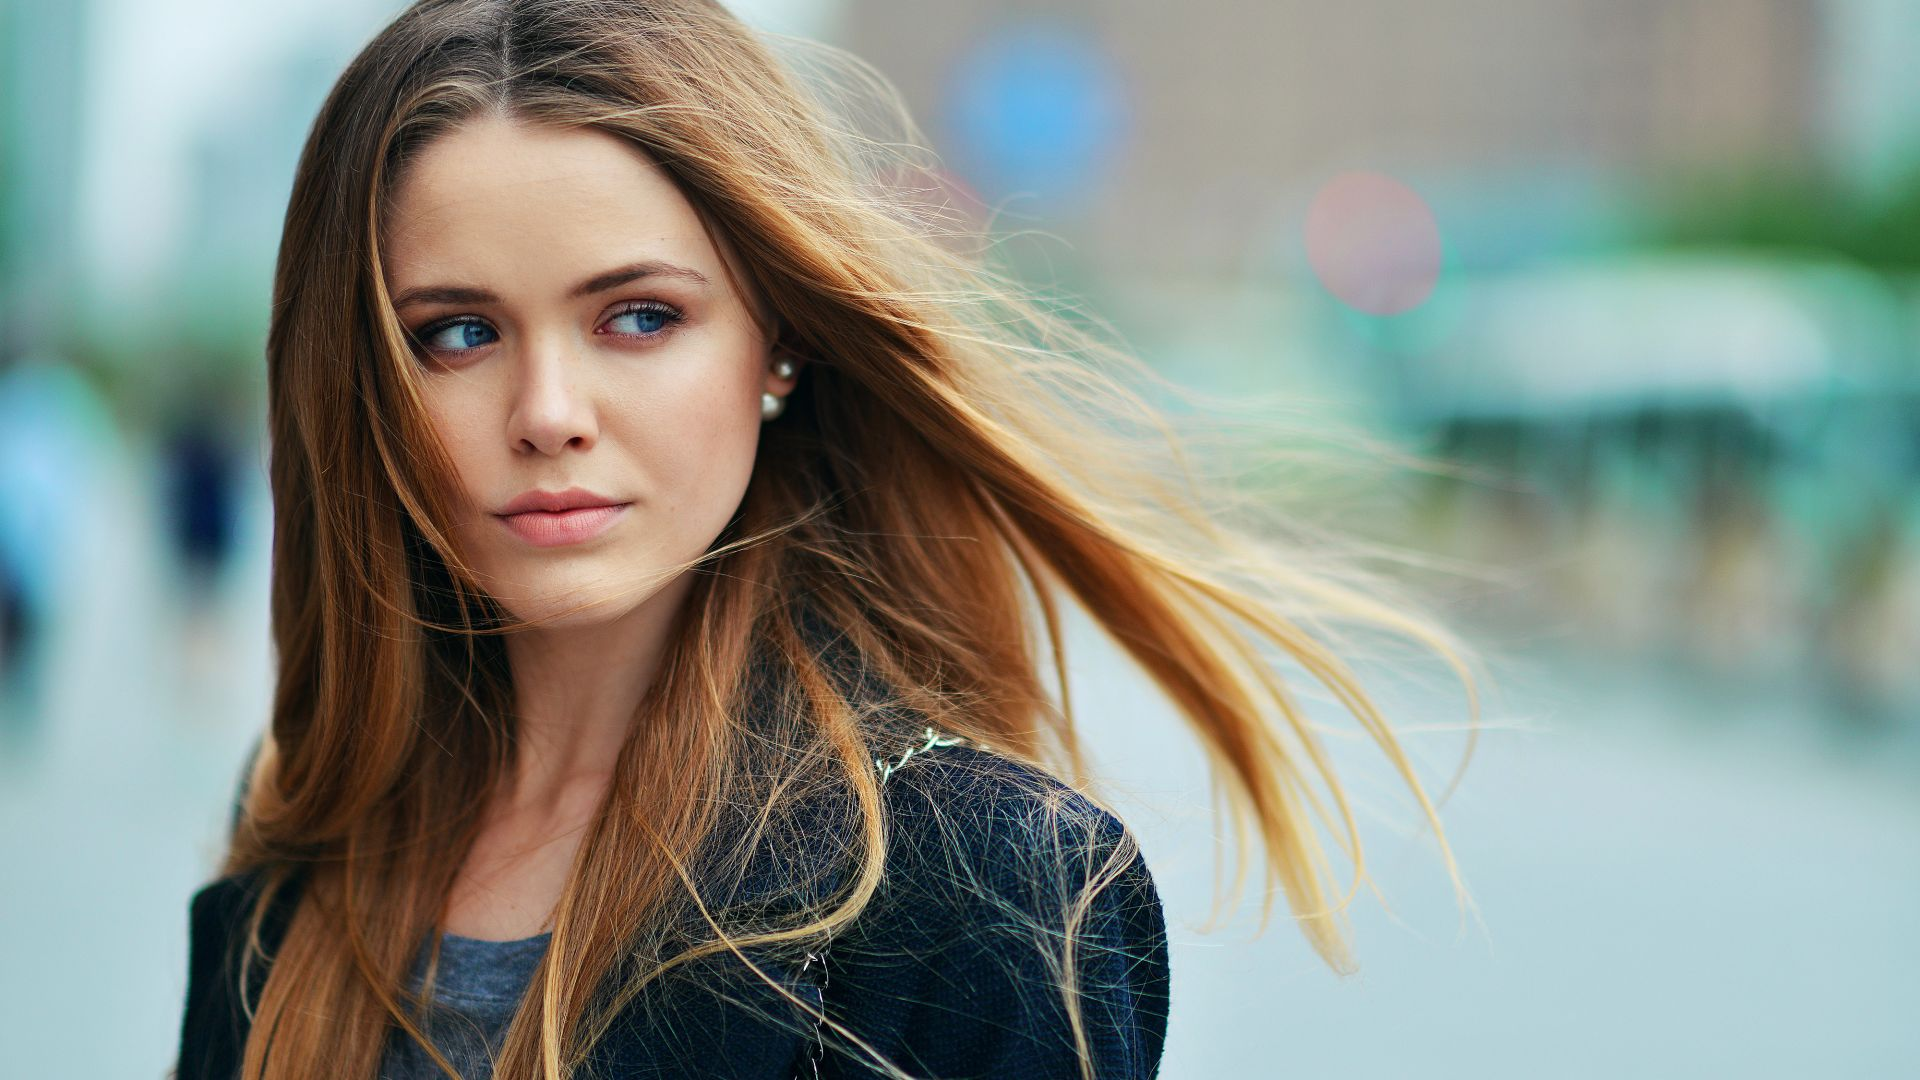 Kristina Bazan, Most Popular Celebs, actress (horizontal)